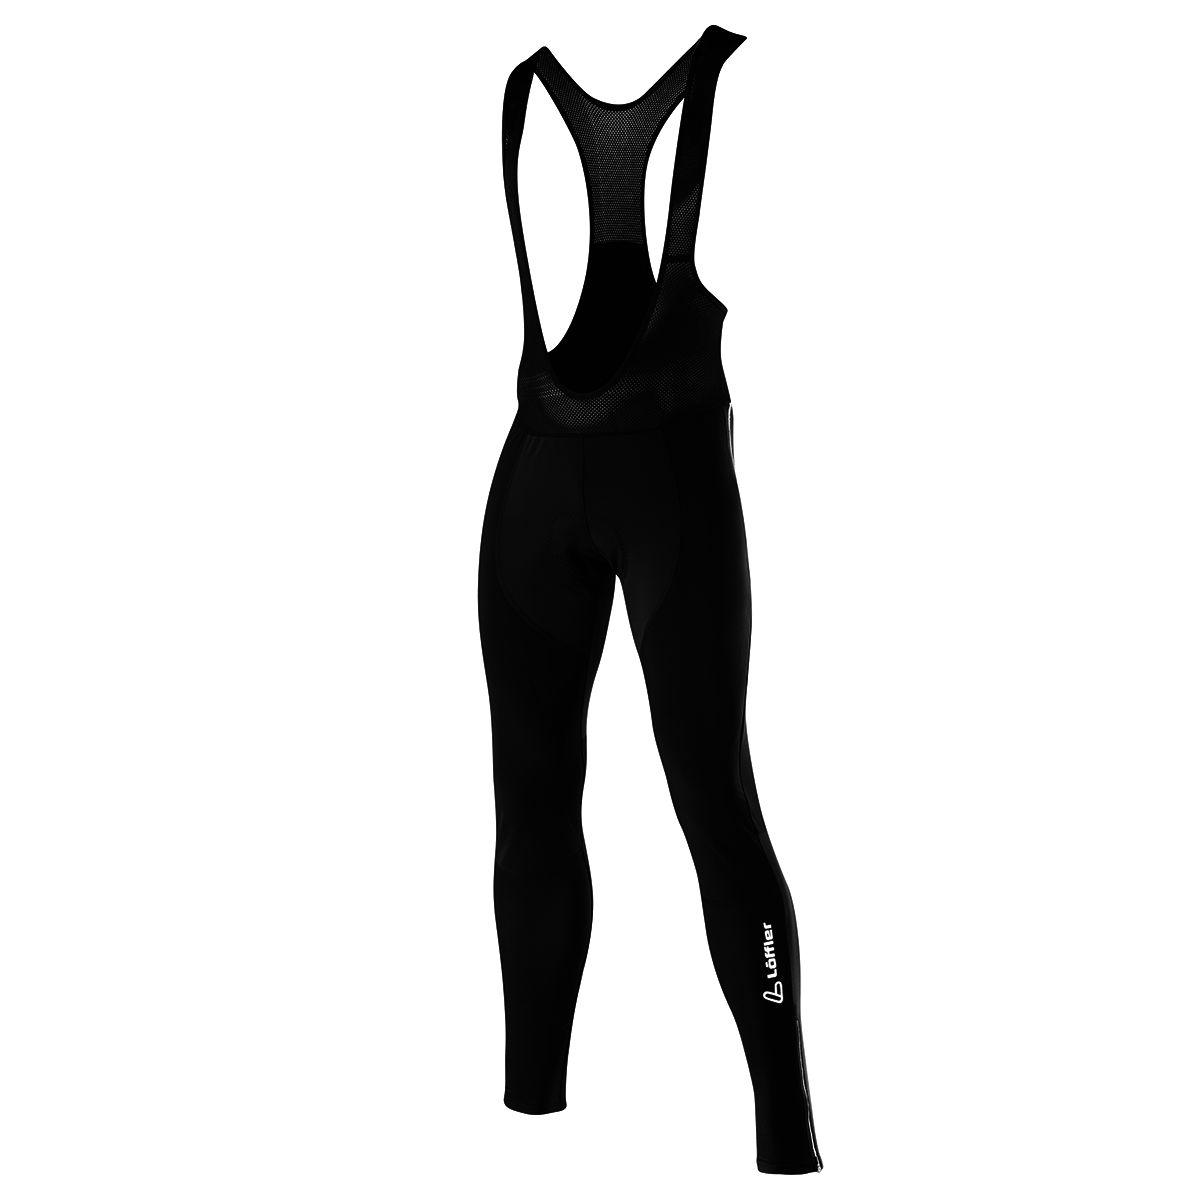 THERMOFORTE men's bib tights